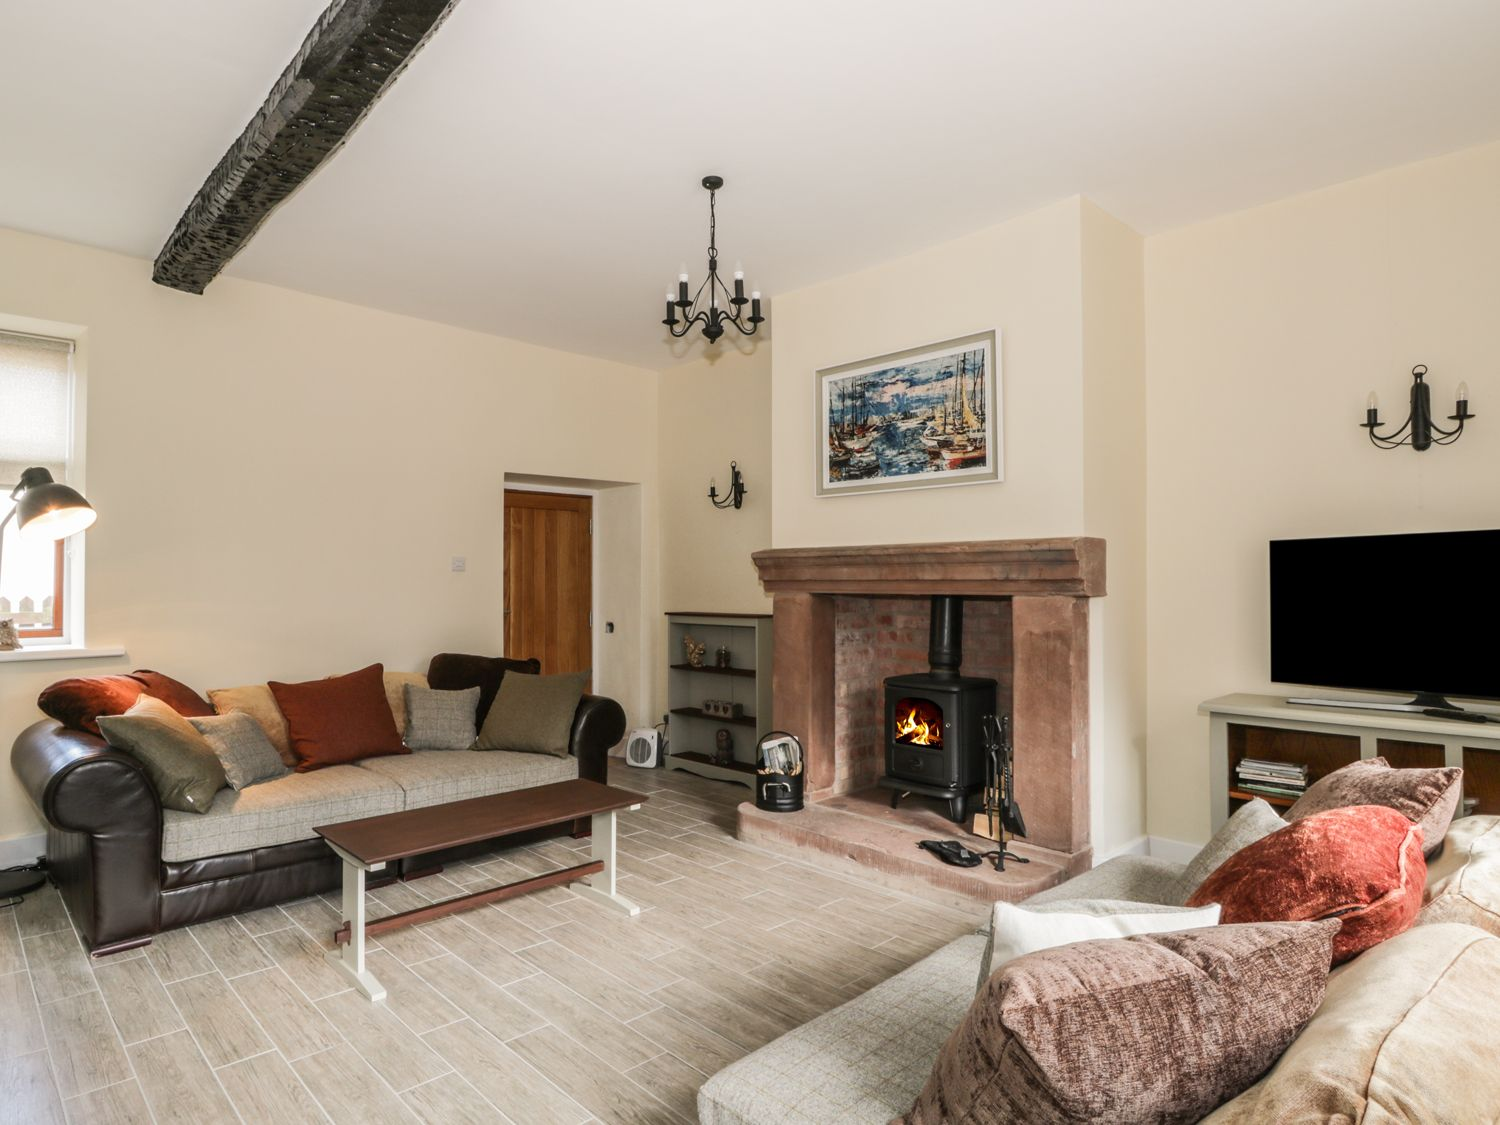 4 Spittal Farm - Lake District - 977717 - photo 1